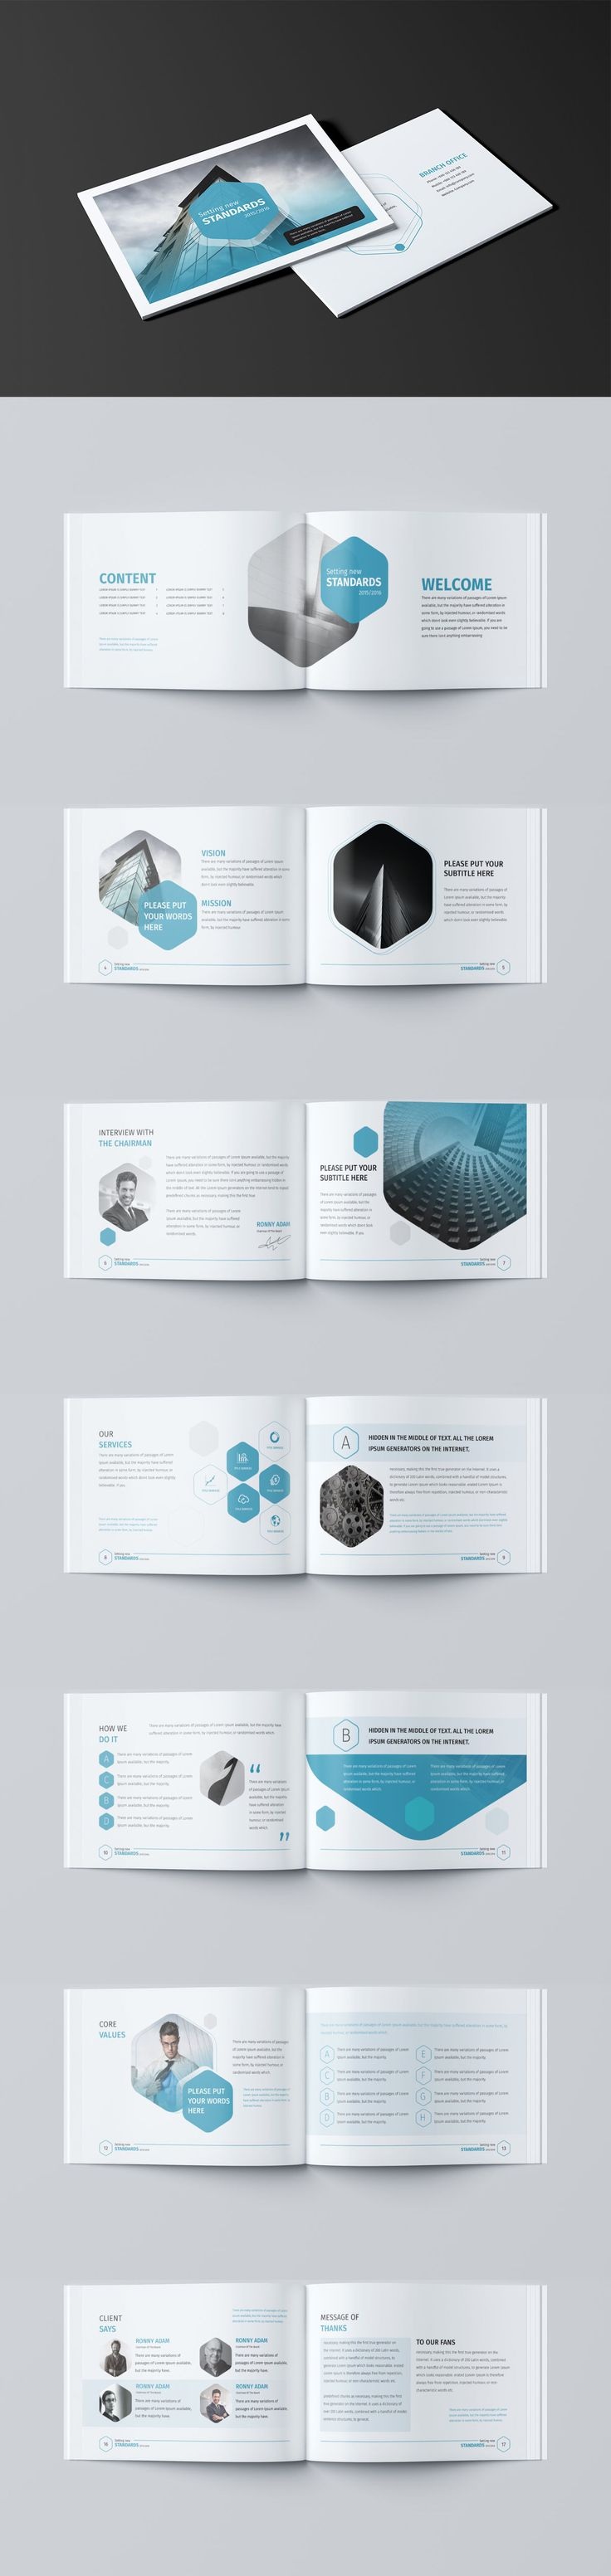 Corporate Business Brochure / Landscape Template InDesign INDD